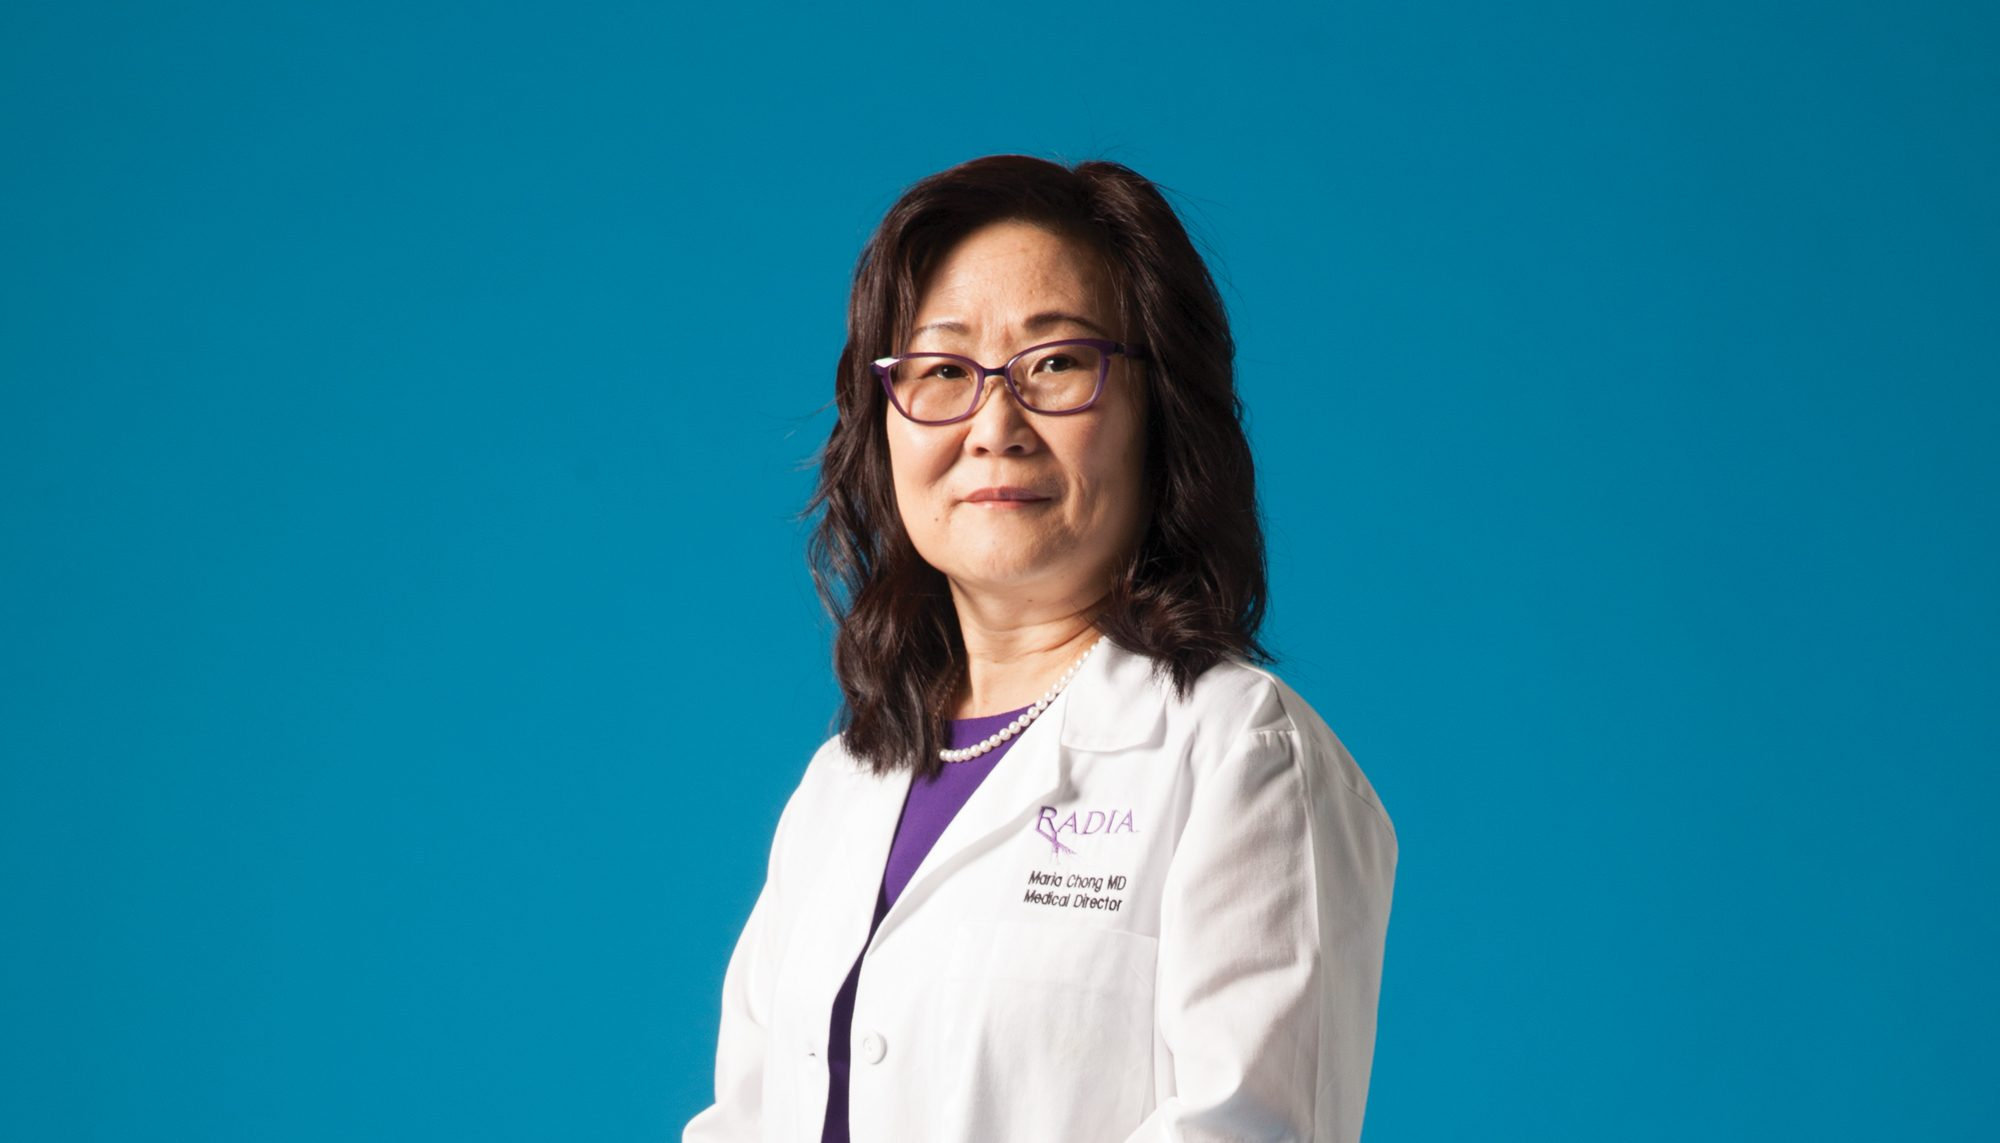 Qa Seattle Top Doctor Maria Chong Says Artificial Intelligence And